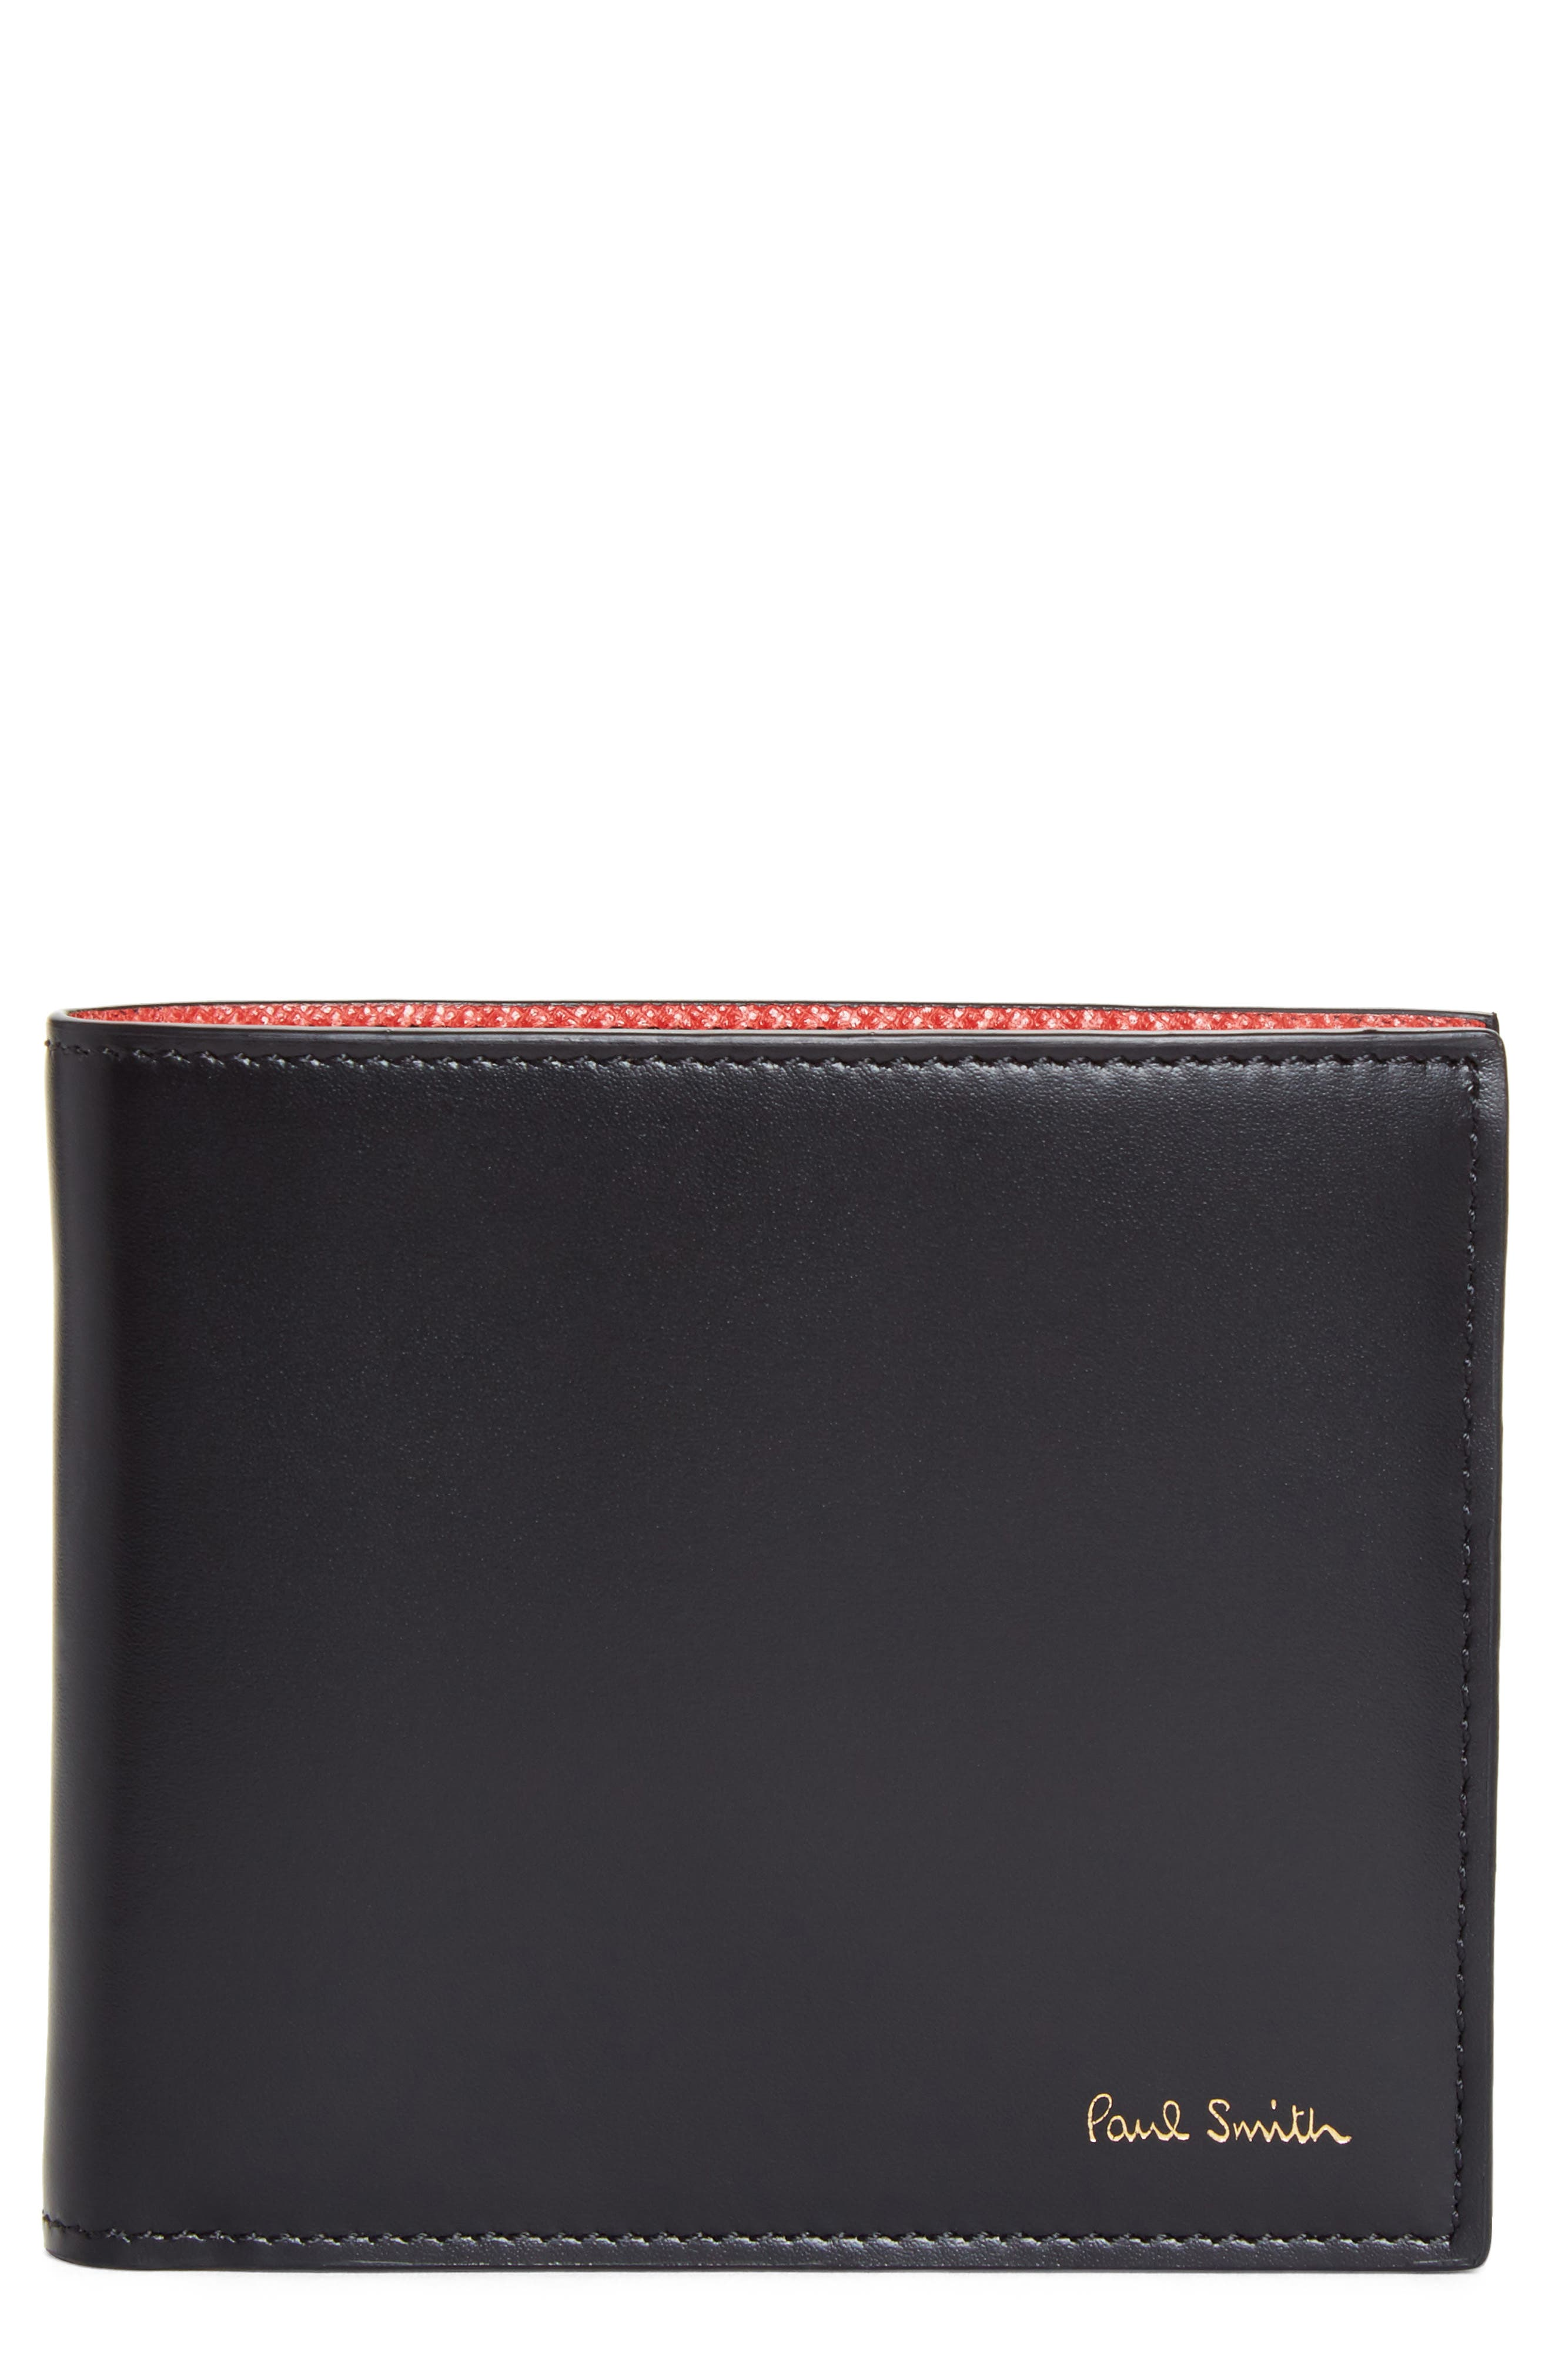 Alternate Image 1 Selected - Paul Smith Leopard Print Billfold Wallet